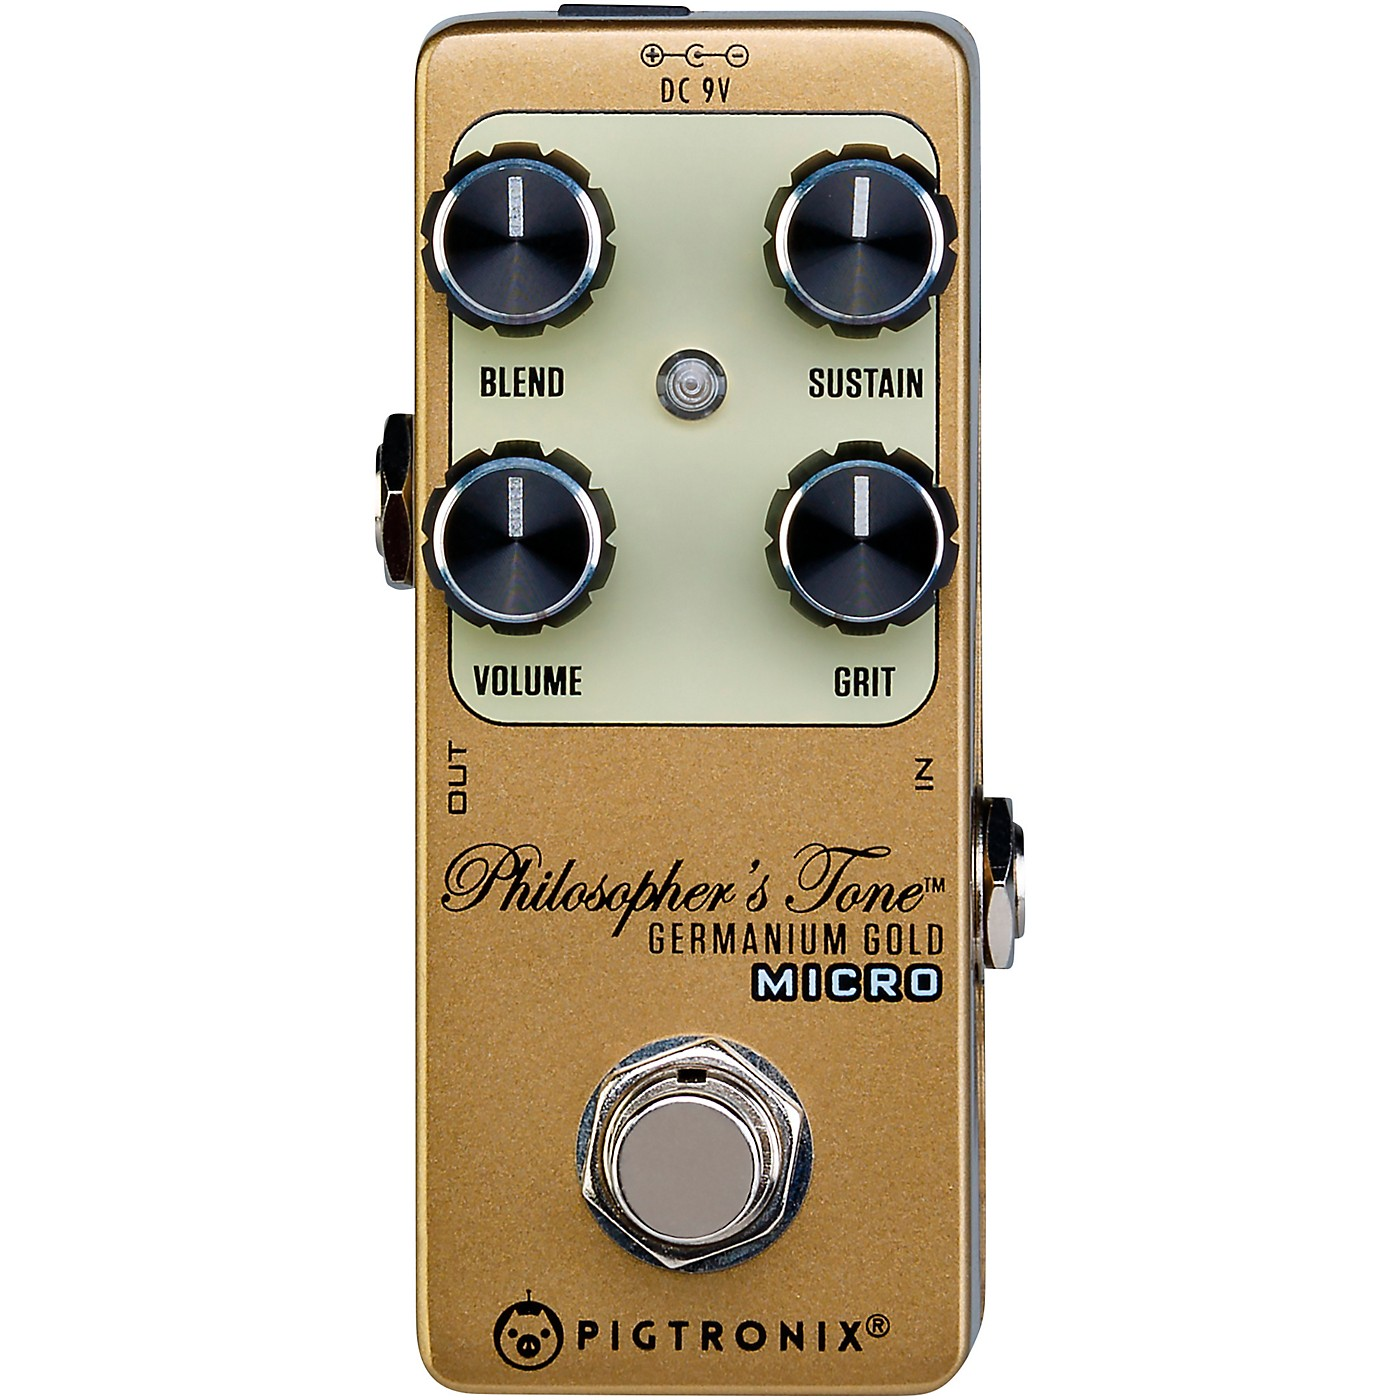 Pigtronix Germanium Gold Compressor Micro Effects Pedal thumbnail